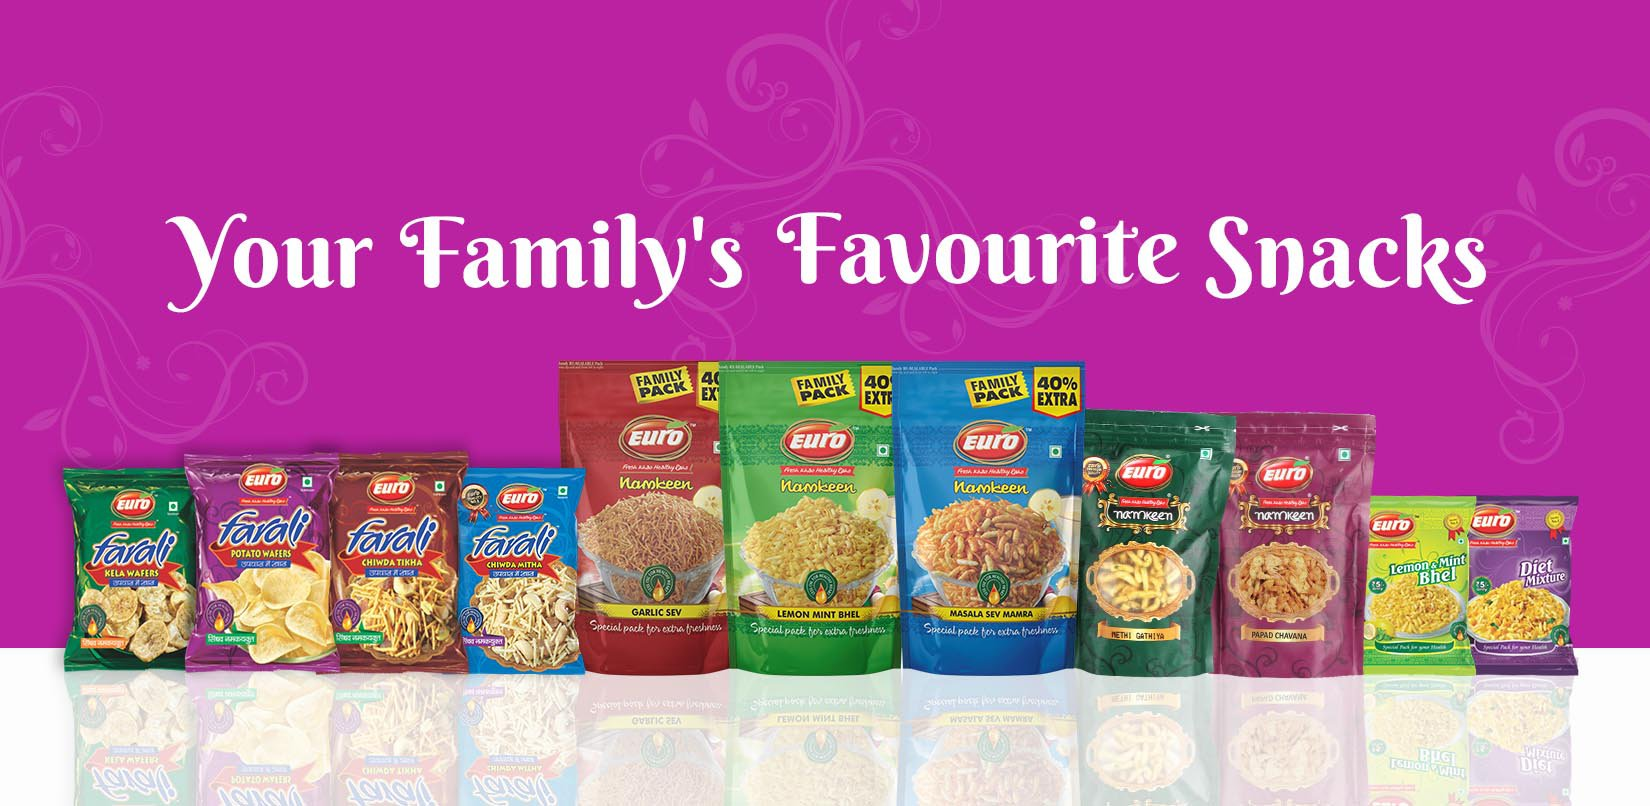 Your family's favourite snacks